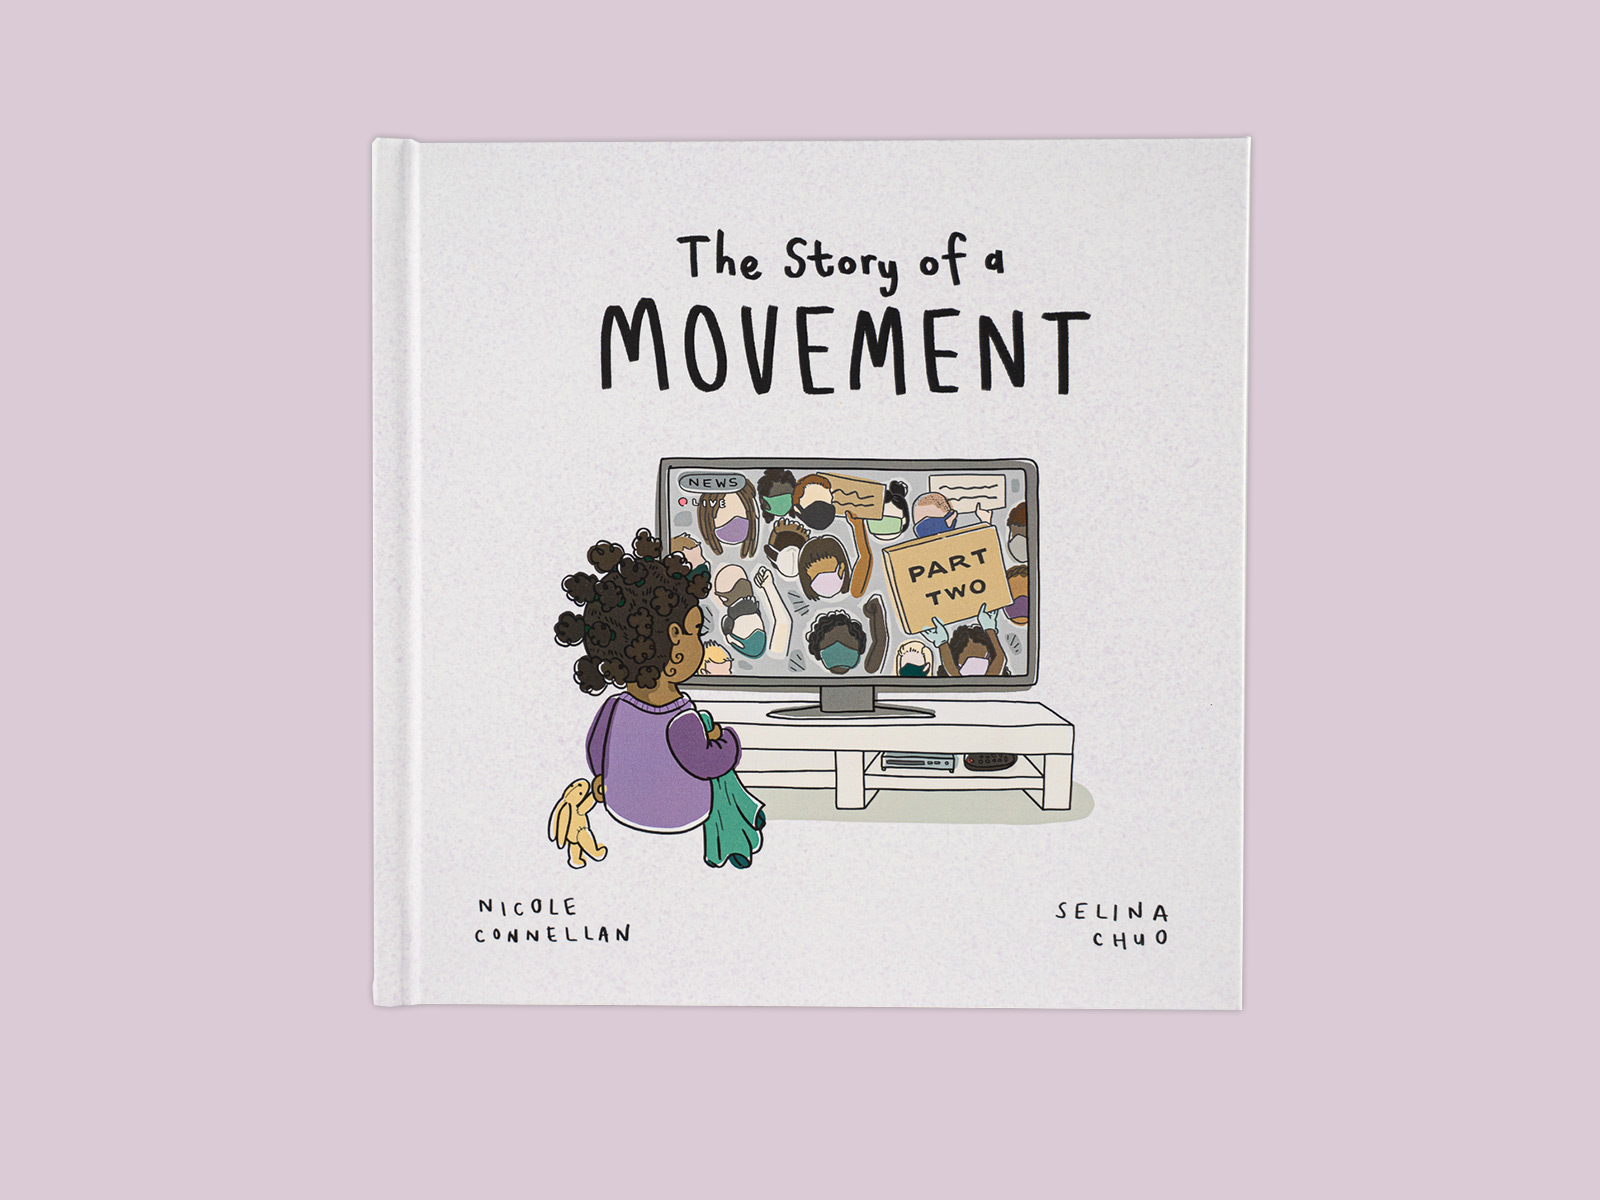 The Story of a Movement